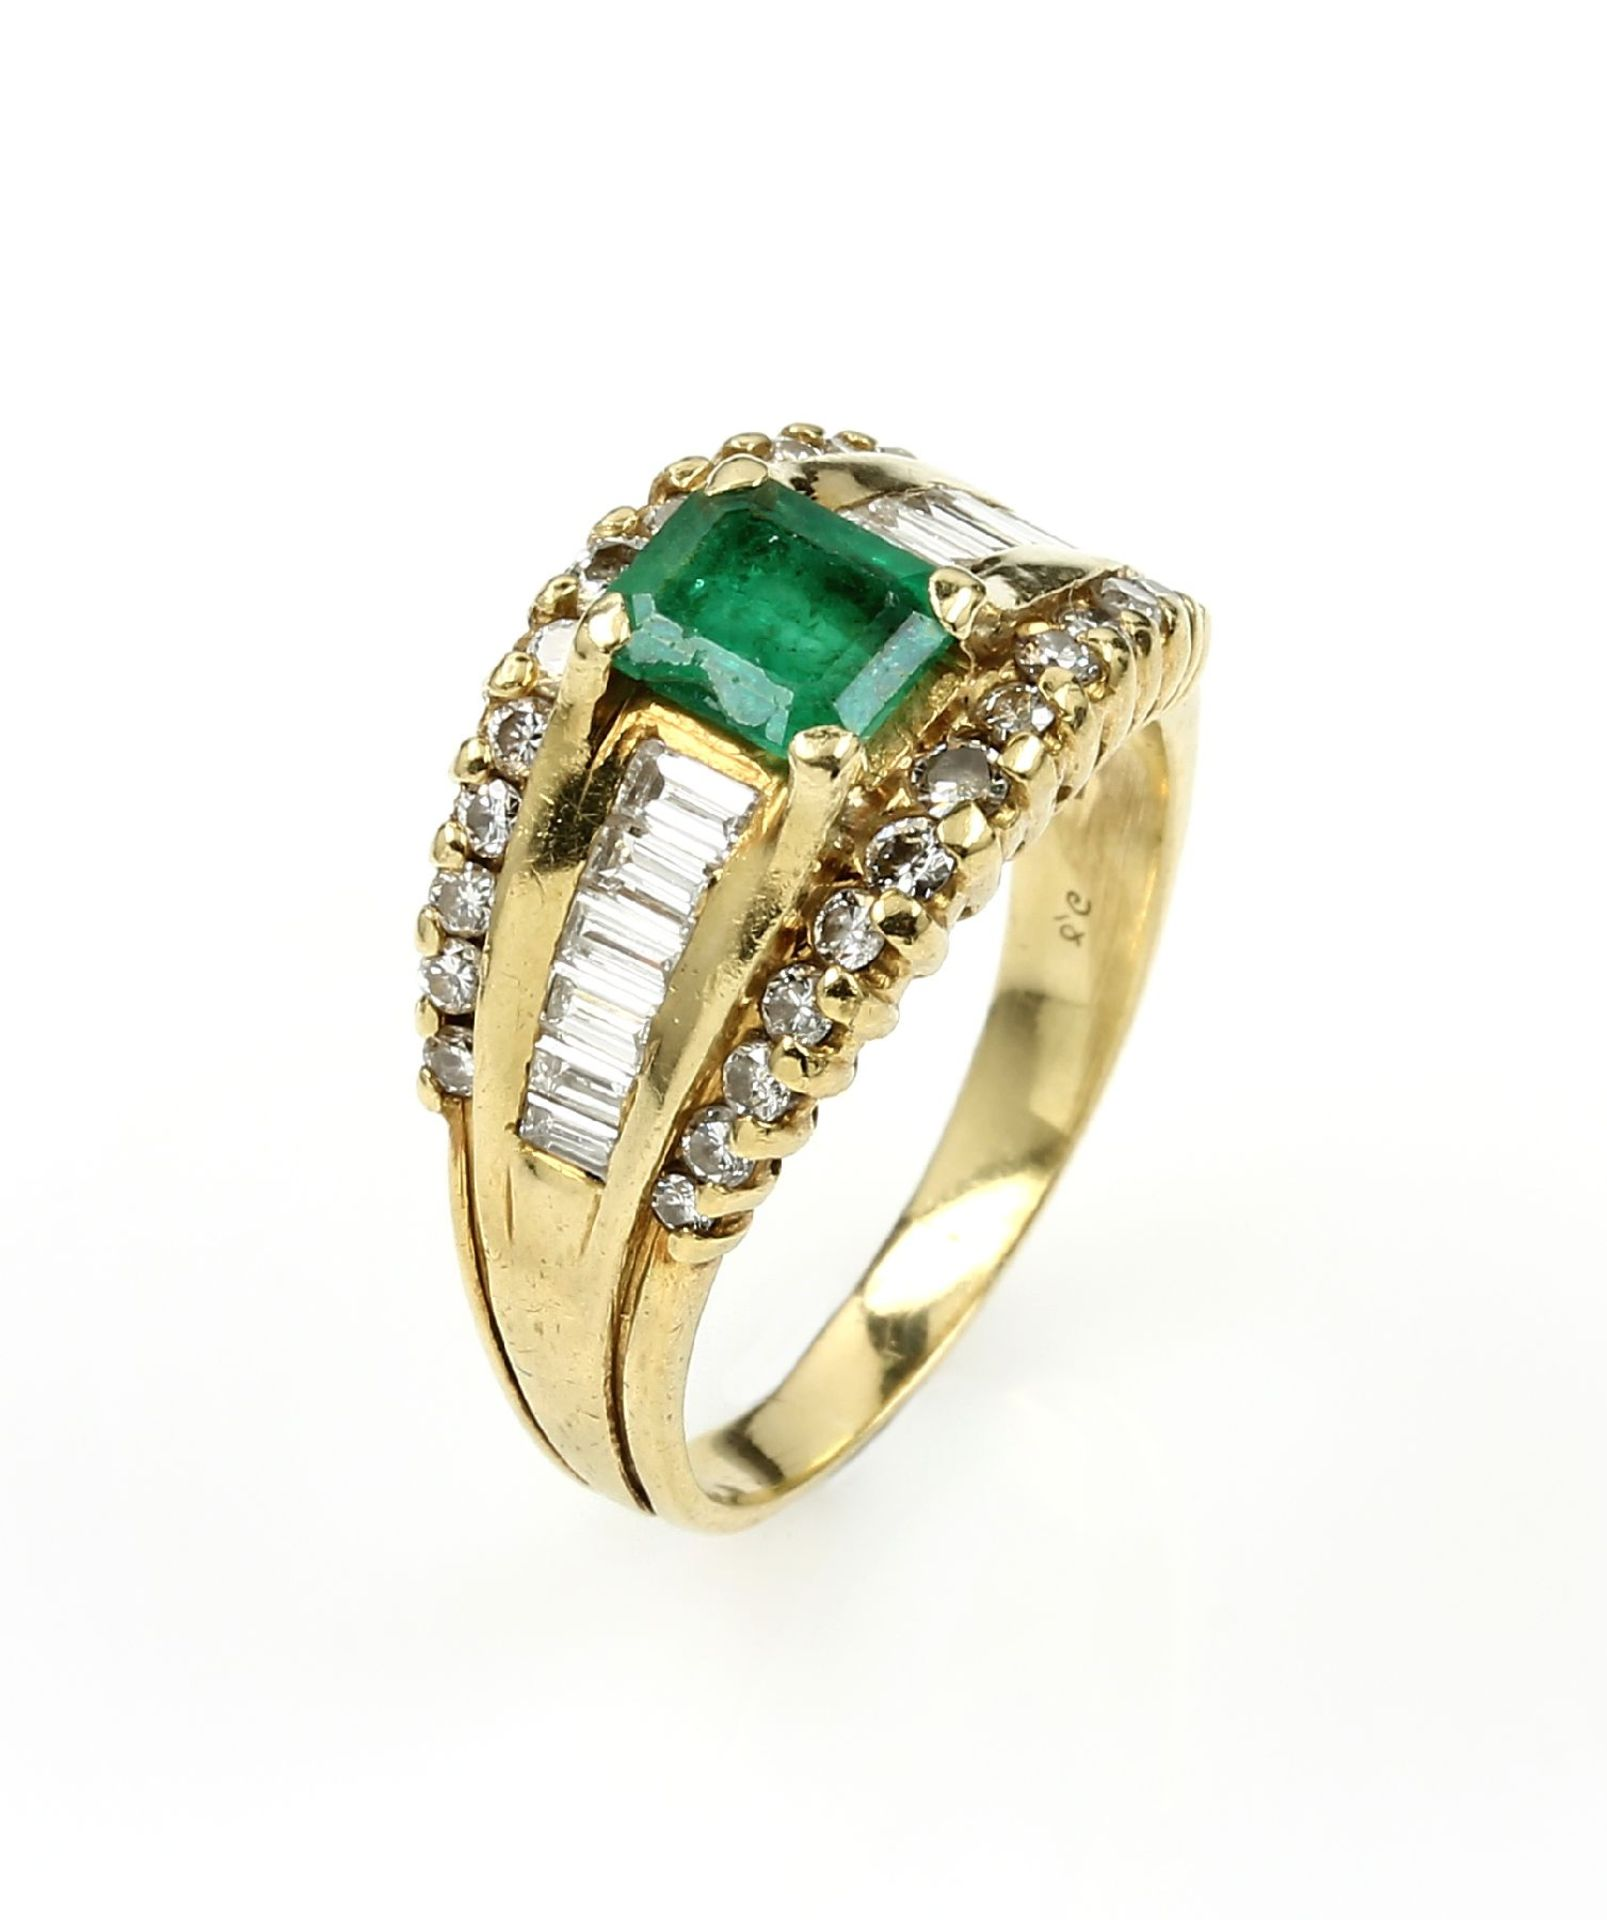 Los 61546 - 18 kt gold ring with emerald and brilliants , YG 750/000, emerald cut emerald approx. 1.0, 26